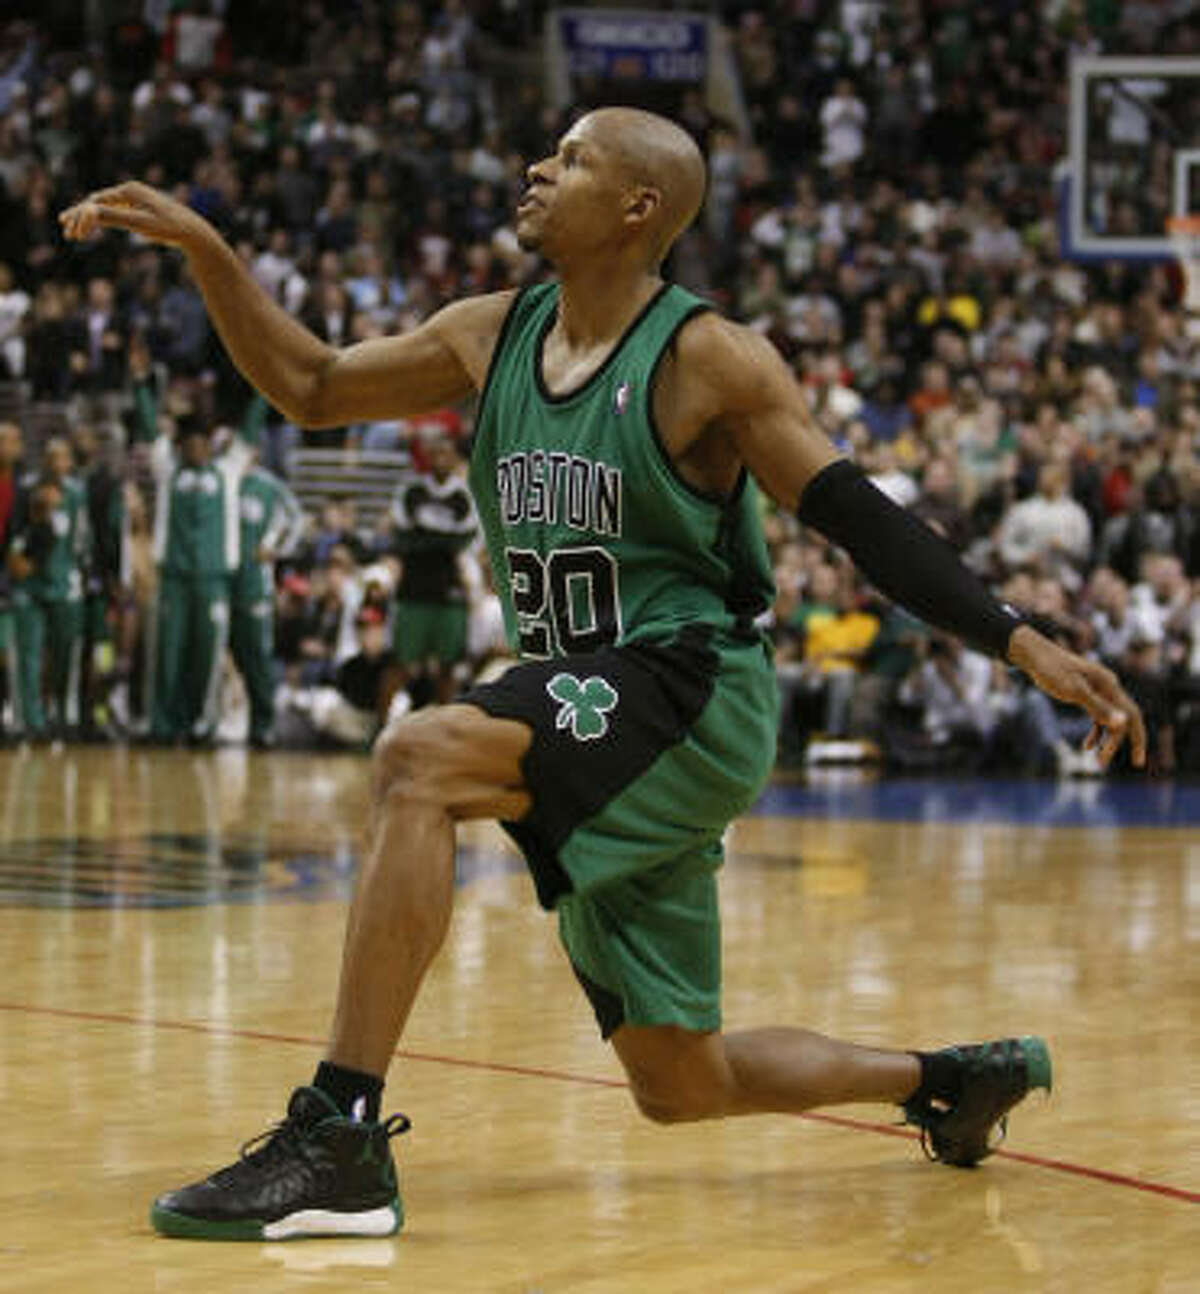 3 - BOSTON CELTICS - (Last wk: 4) - 44-11 - Just a false alarm on the seriousness of Ray Allen's injury. But for all the wins and all the long win streaks, it looks like the Celtics still missing ingredients to go back-to-back. How about a backup point guard and big man?